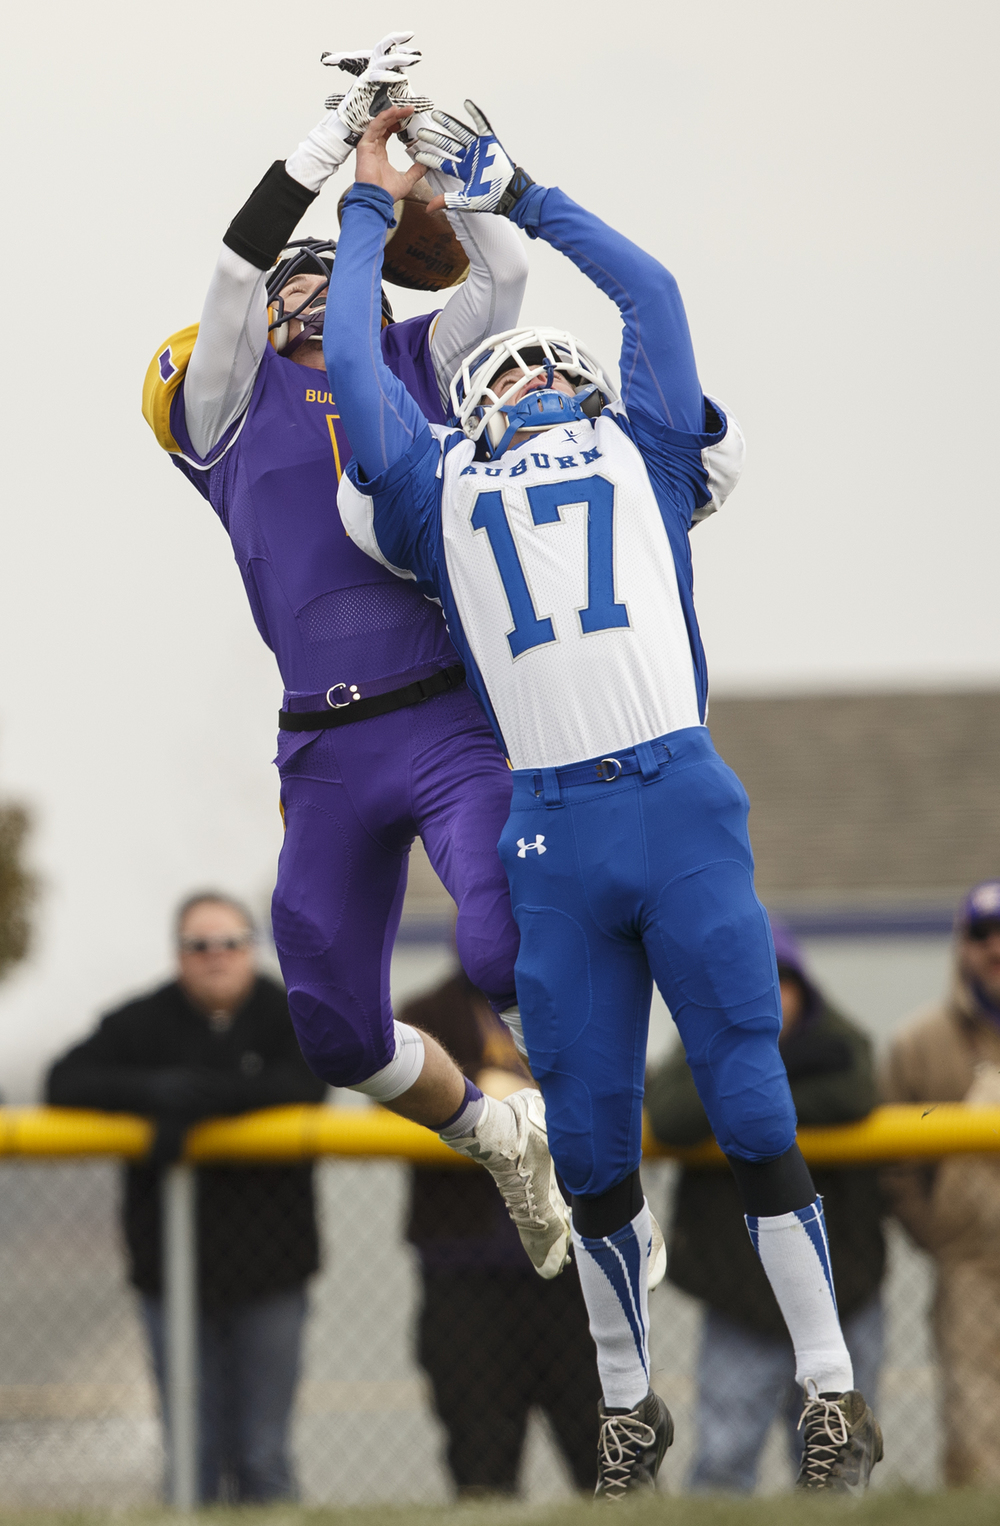 Auburn's Michael Ricker can't stop Williamsville's Daniel Daykin from grabbing this touchdown reception during the Class 3A high school football playoffs in Williamsville Saturday, Nov. 15, 2014. Ted Schurter/The State Journal-Register